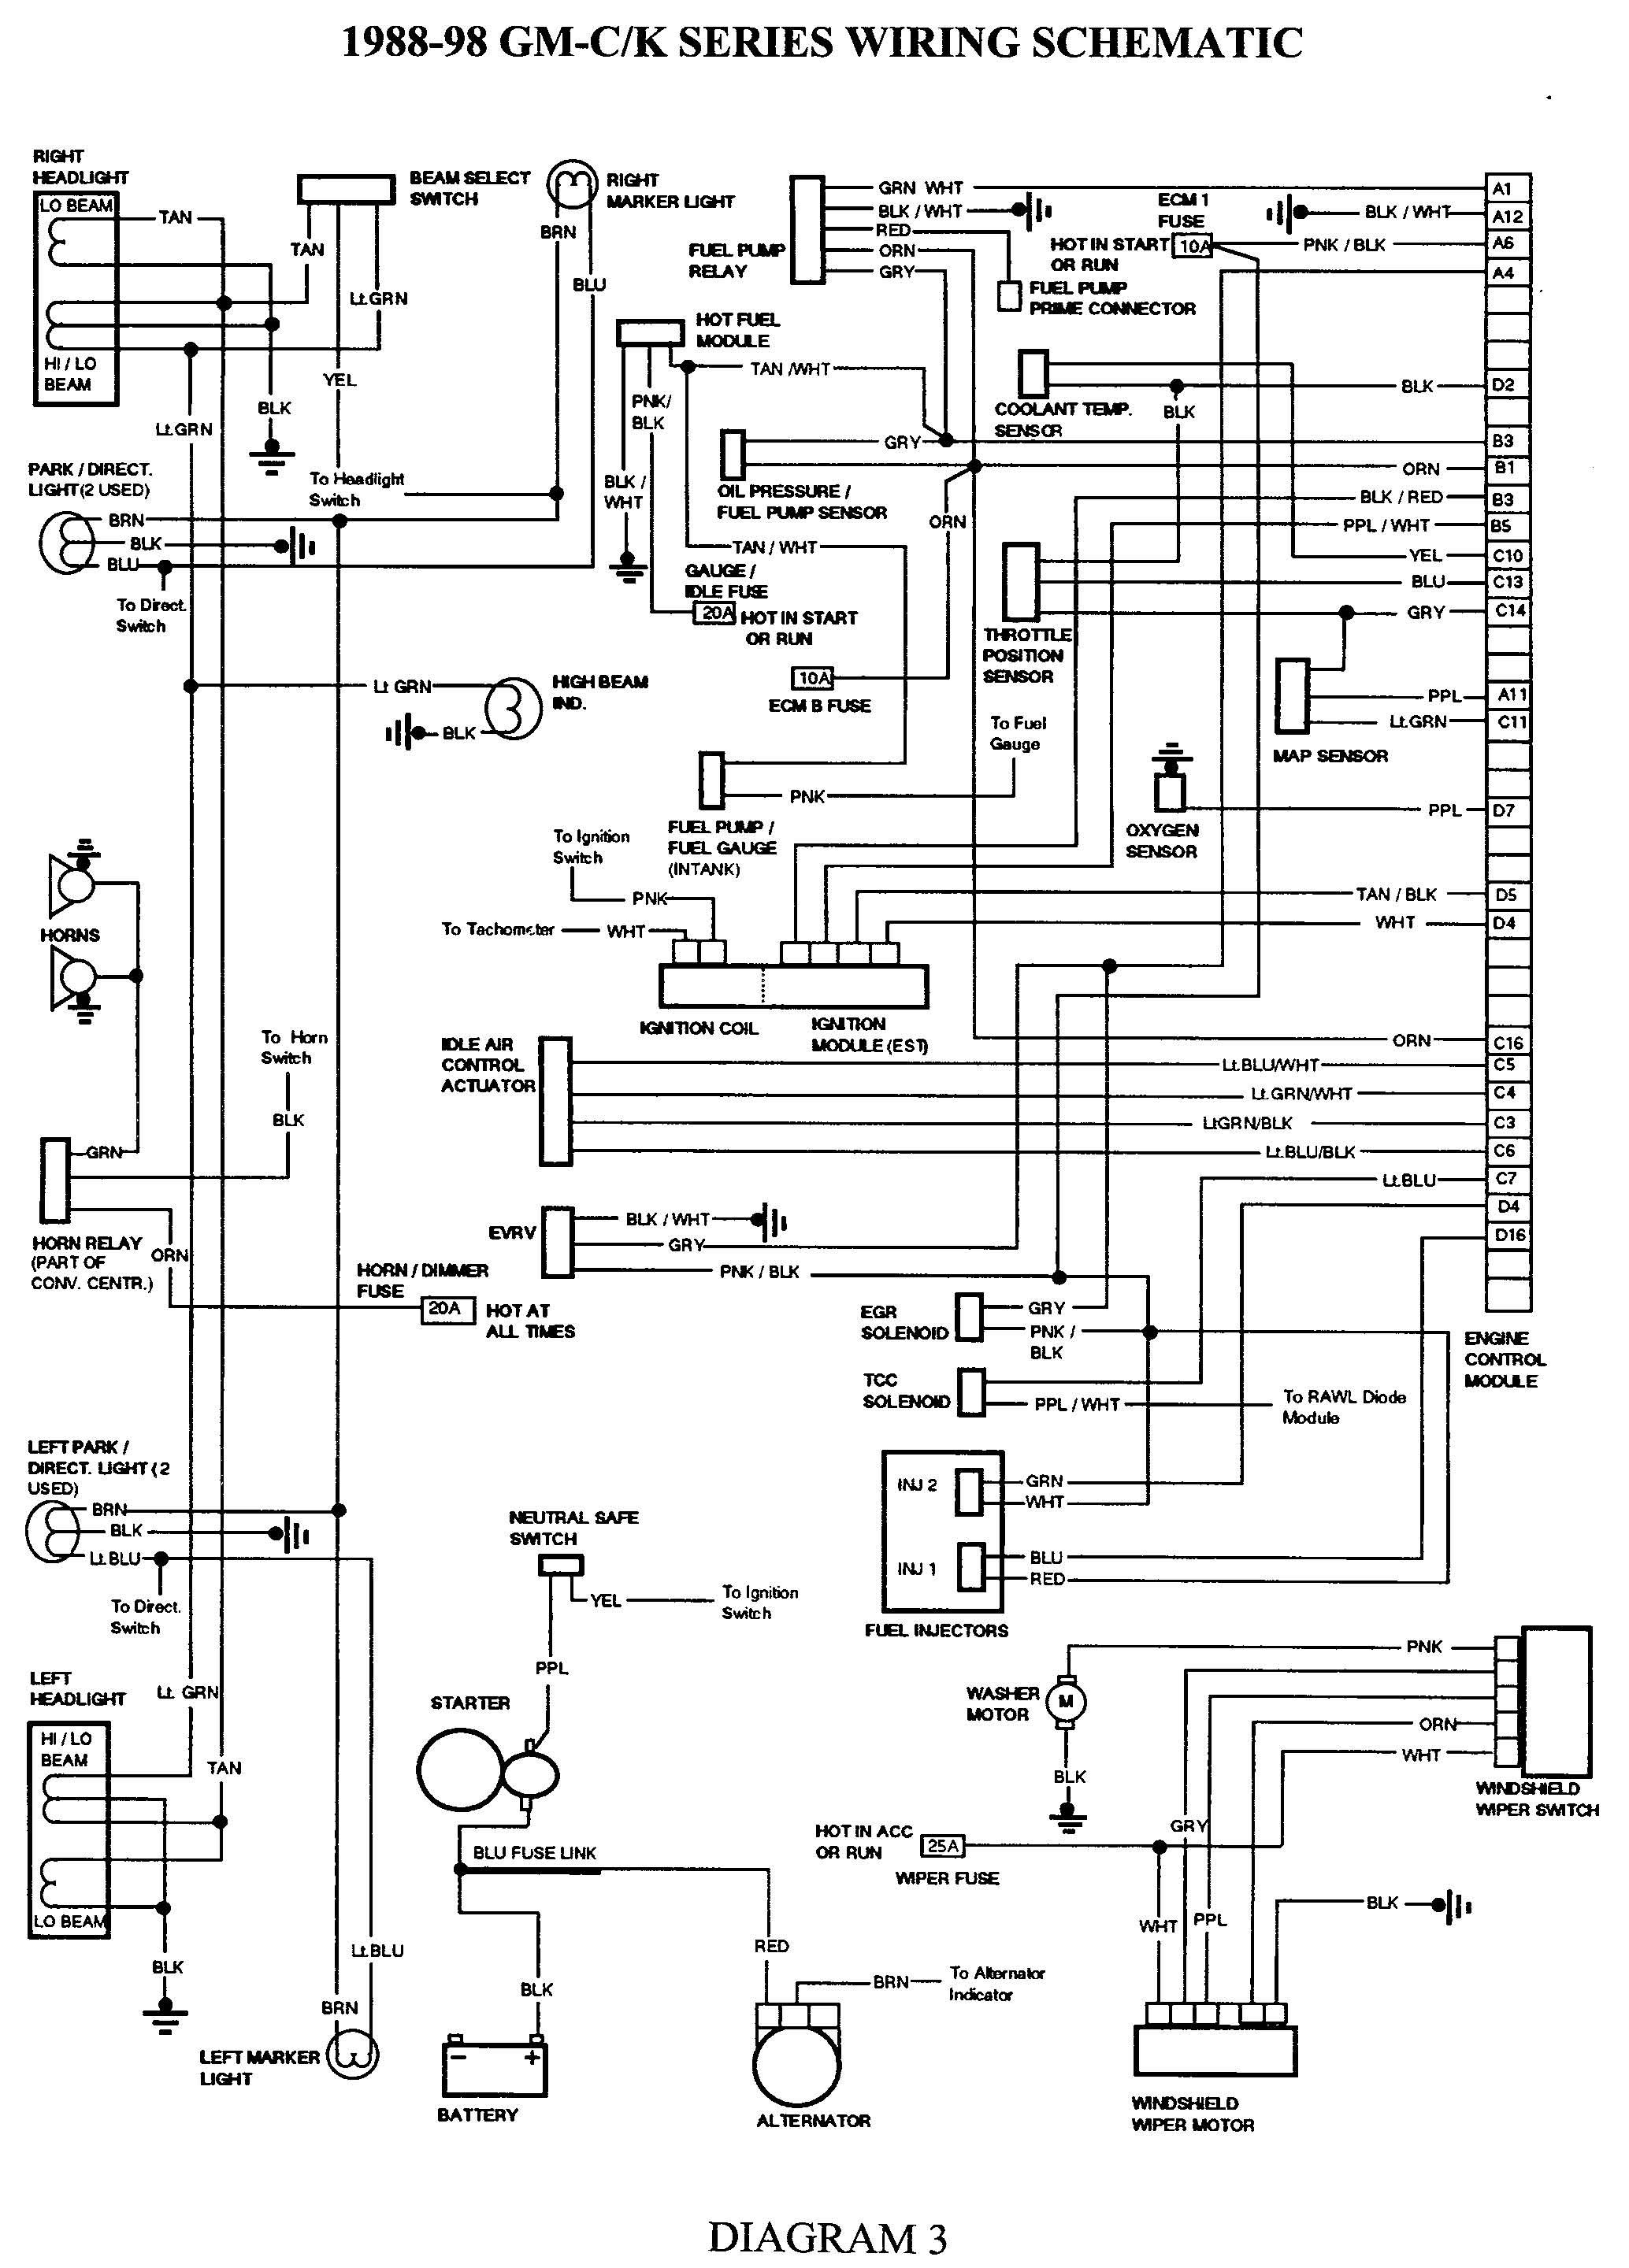 b2f2e5dbdc07dada83ef514f6d4ce3d4 gmc truck wiring diagrams on gm wiring harness diagram 88 98 kc chevy wiring harness at crackthecode.co